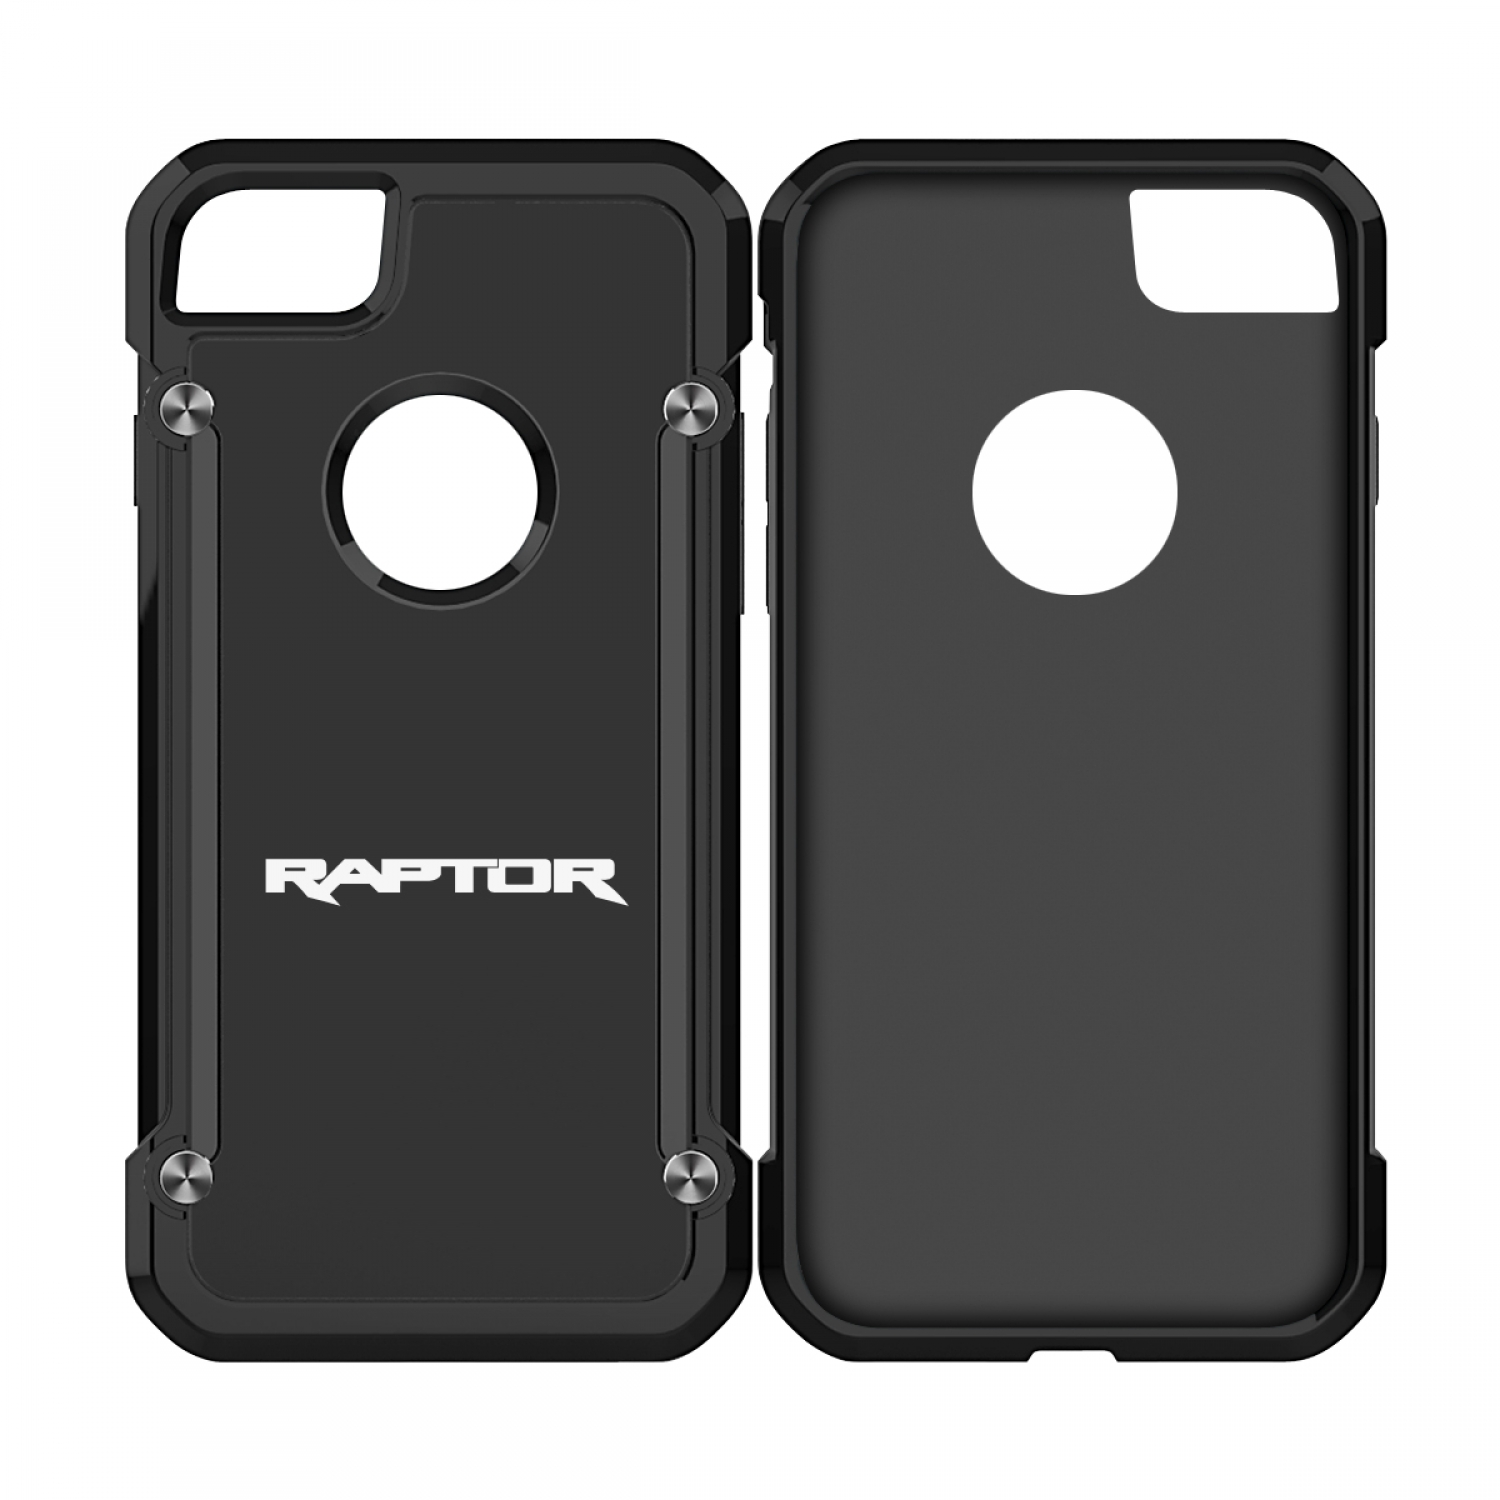 Ford F150 Raptor iPhone 7 iPhone 8 TPU Shockproof Clear Cell Phone Case